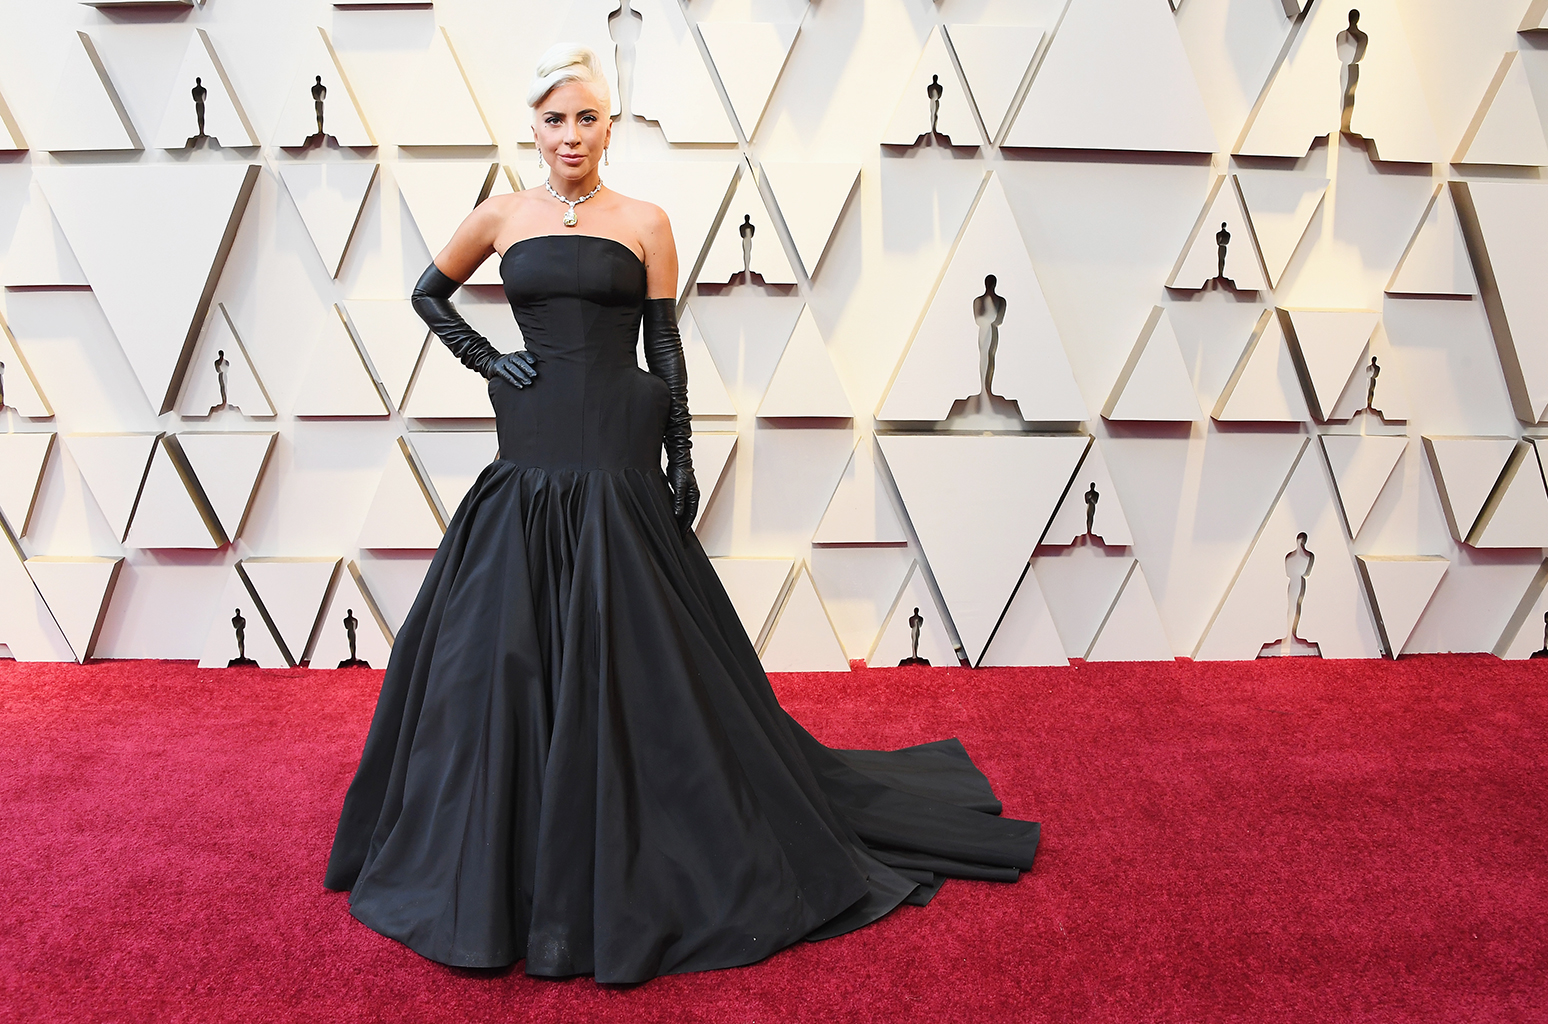 lady-gaga-oscars-rc-2019-billboard-1548.jpg